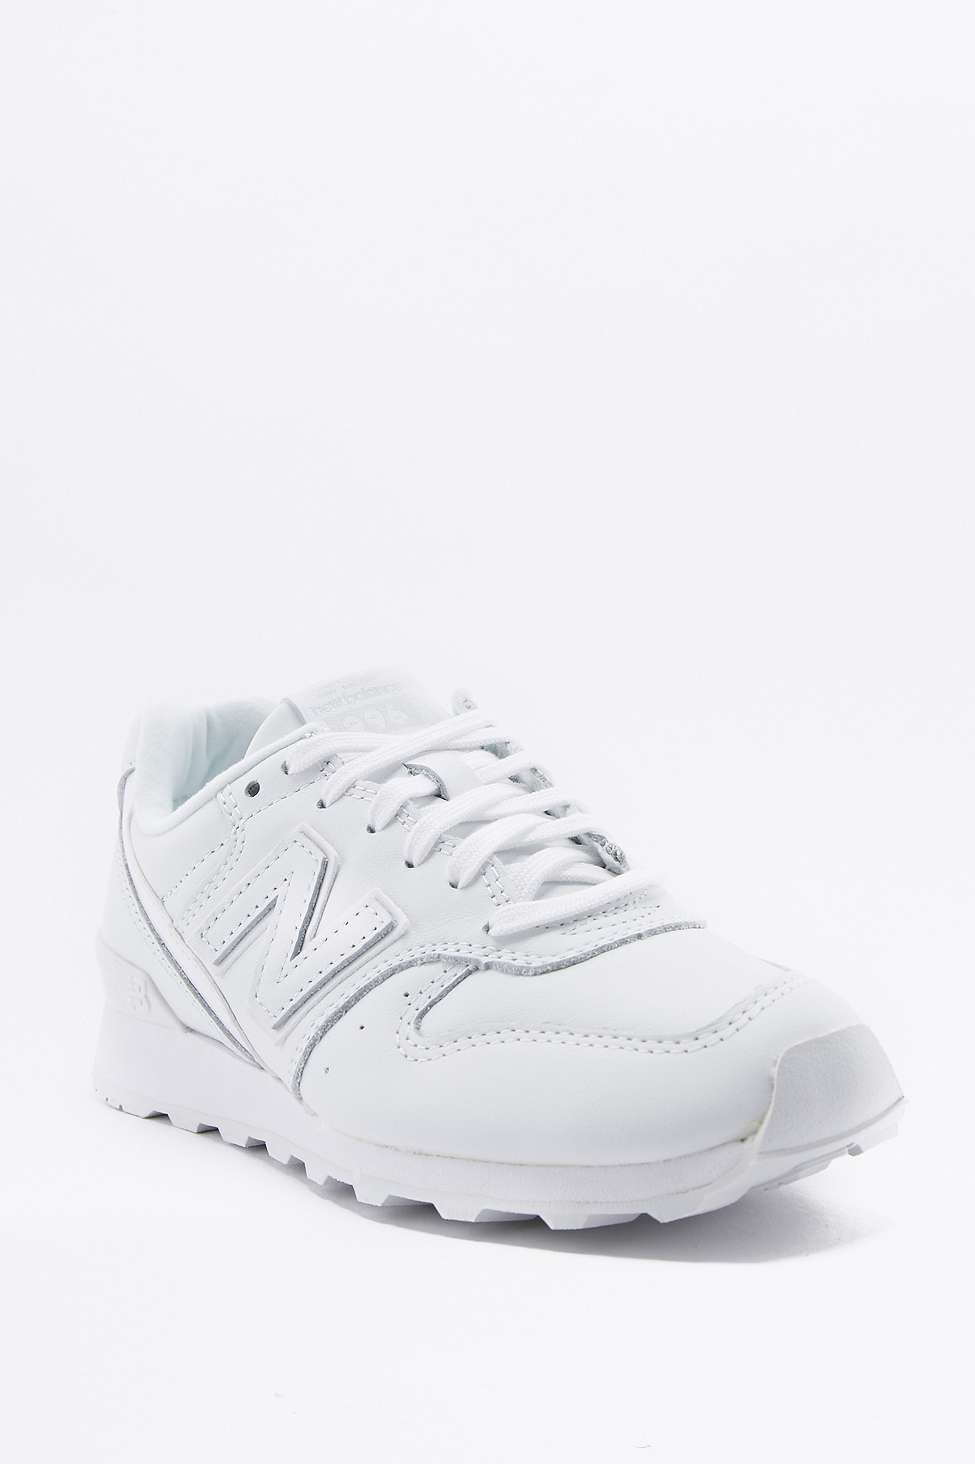 timeless design d6593 e5726 New Balance 996 White Trainers